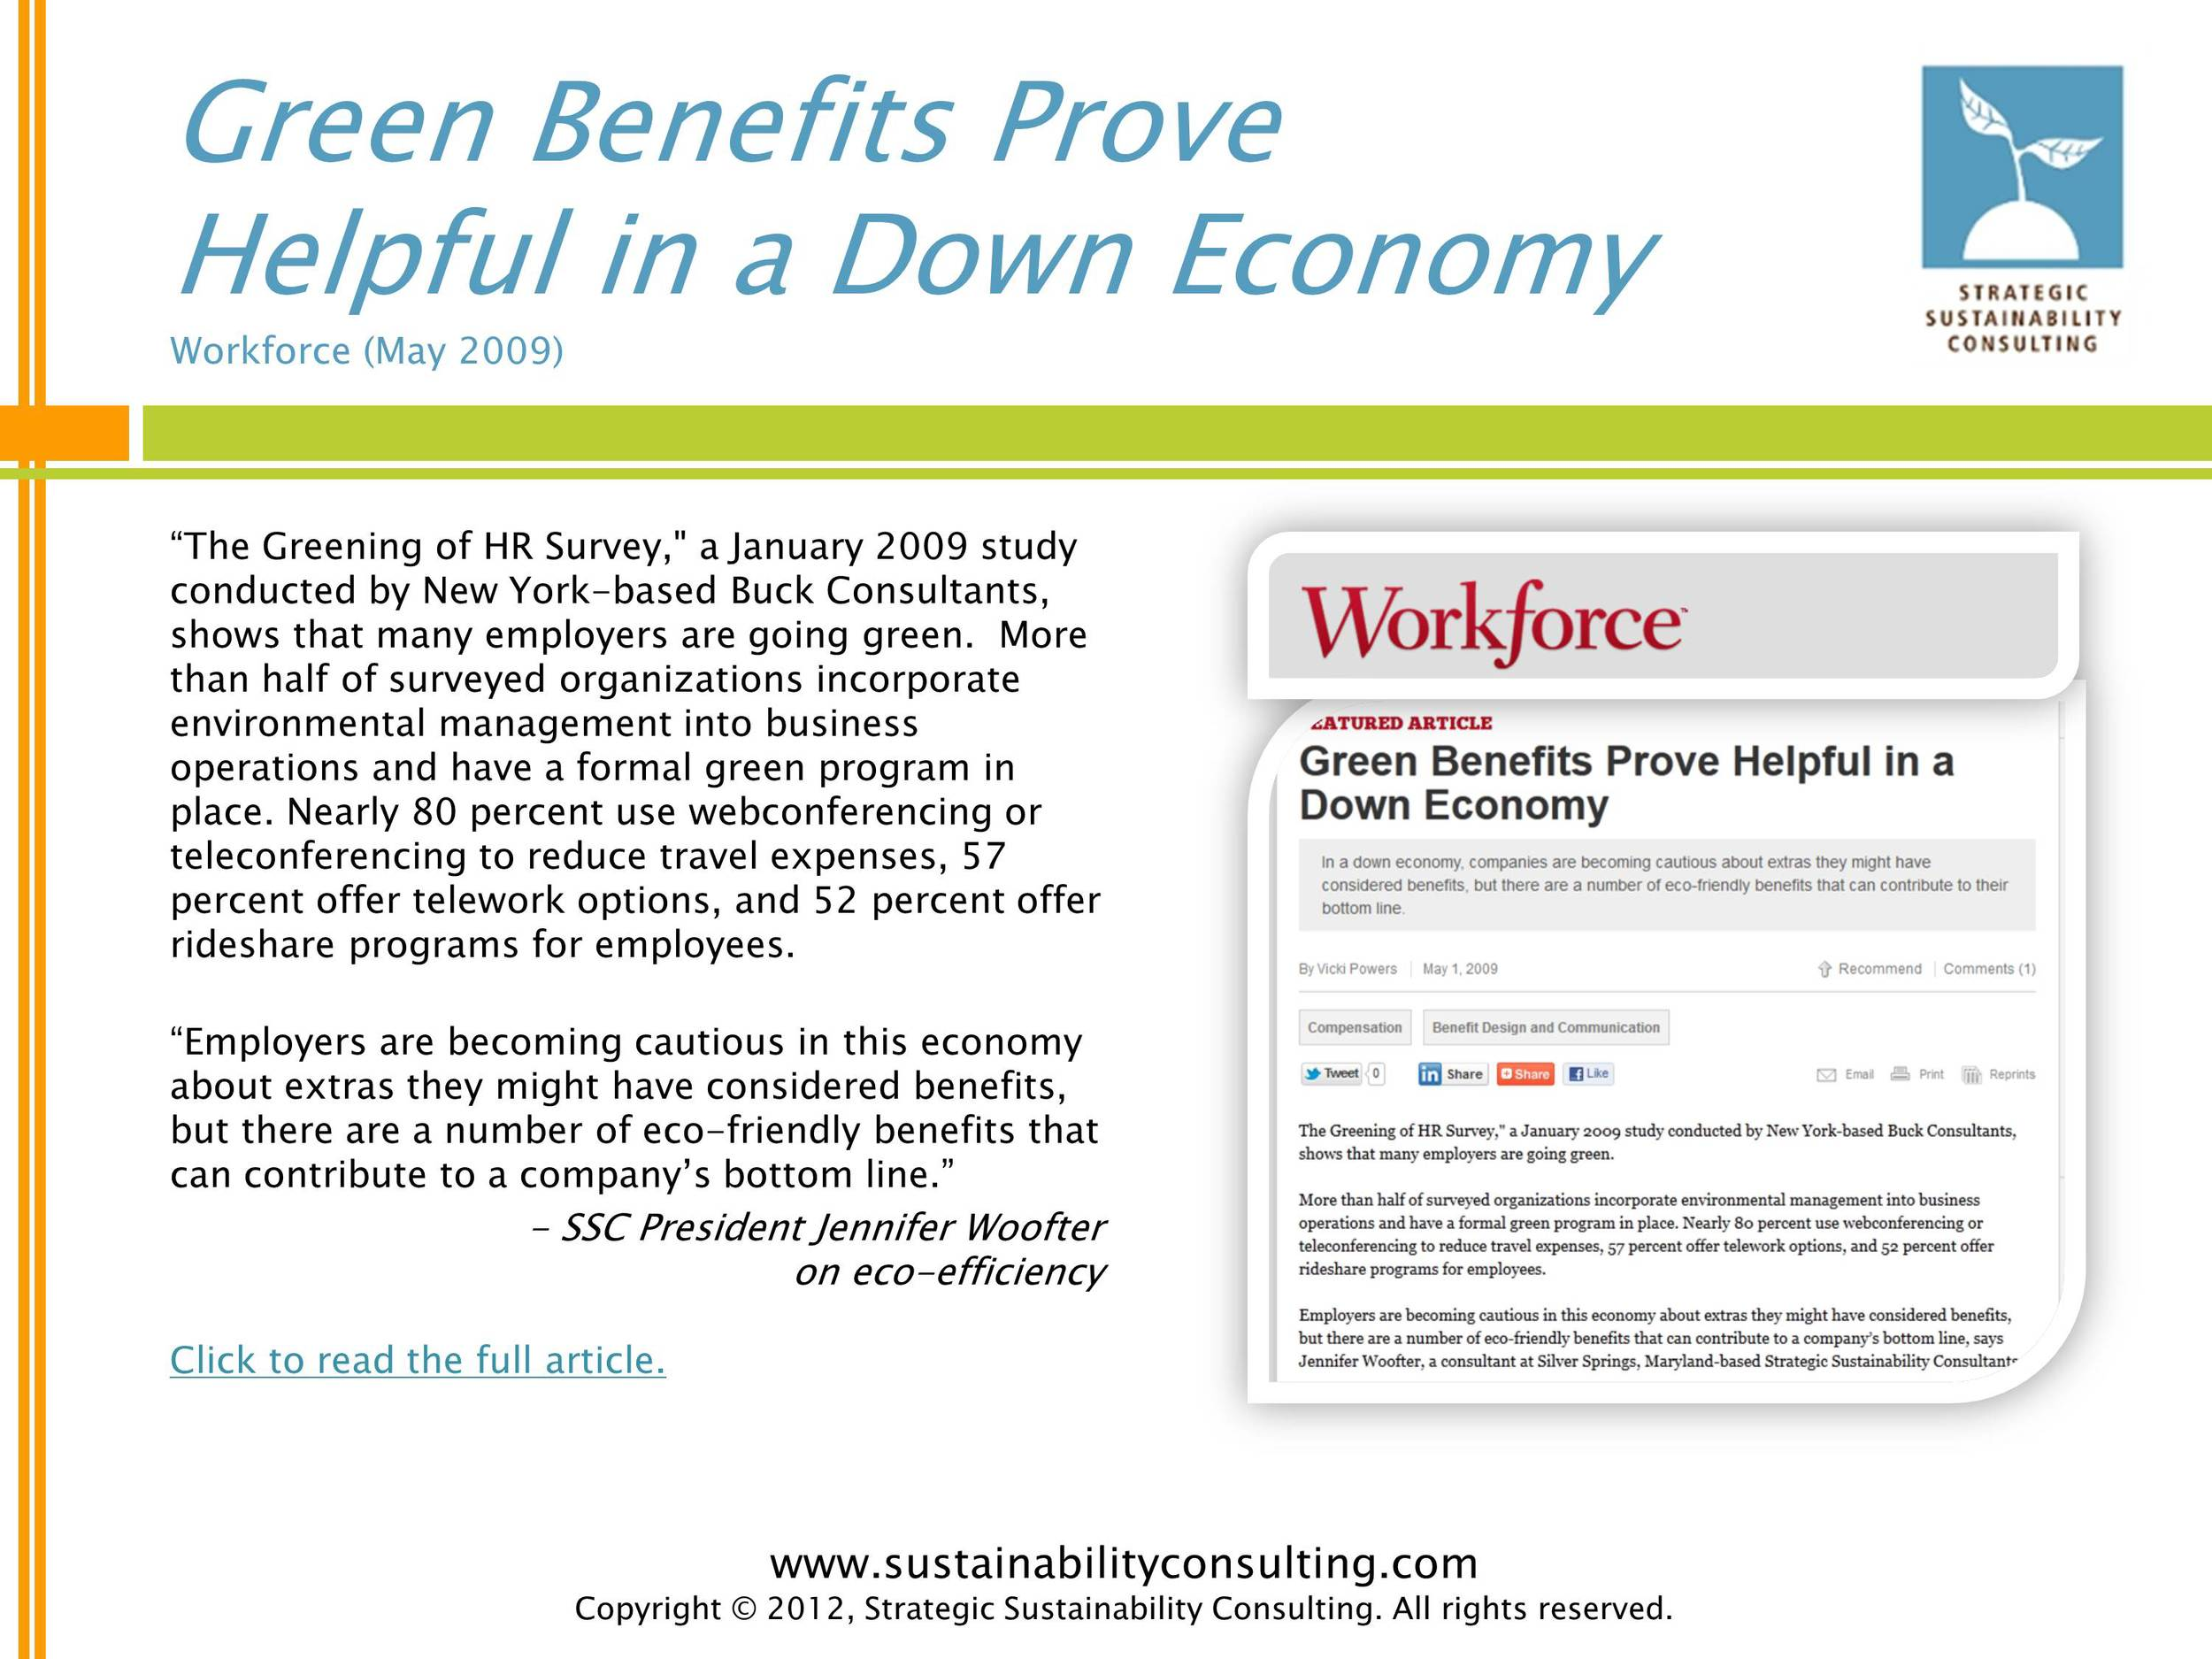 Green Benefits Prove Helpful in a Down Economy